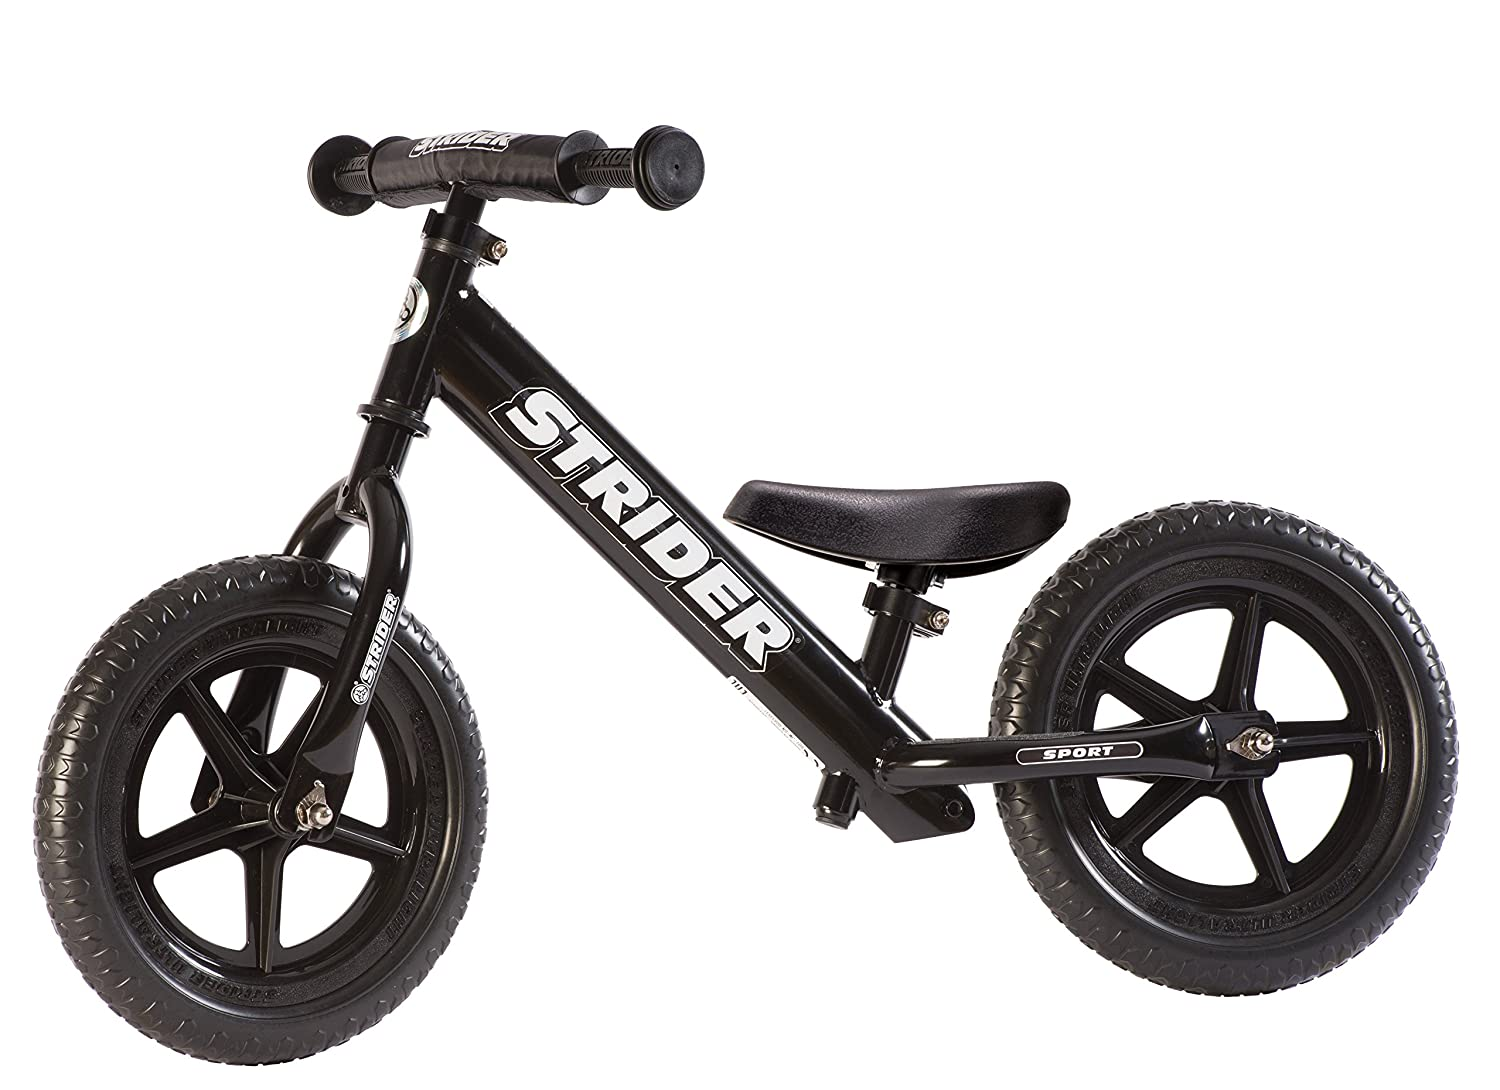 Strider Street ST-S4BK Balance Bike Black Friday Deals 2020